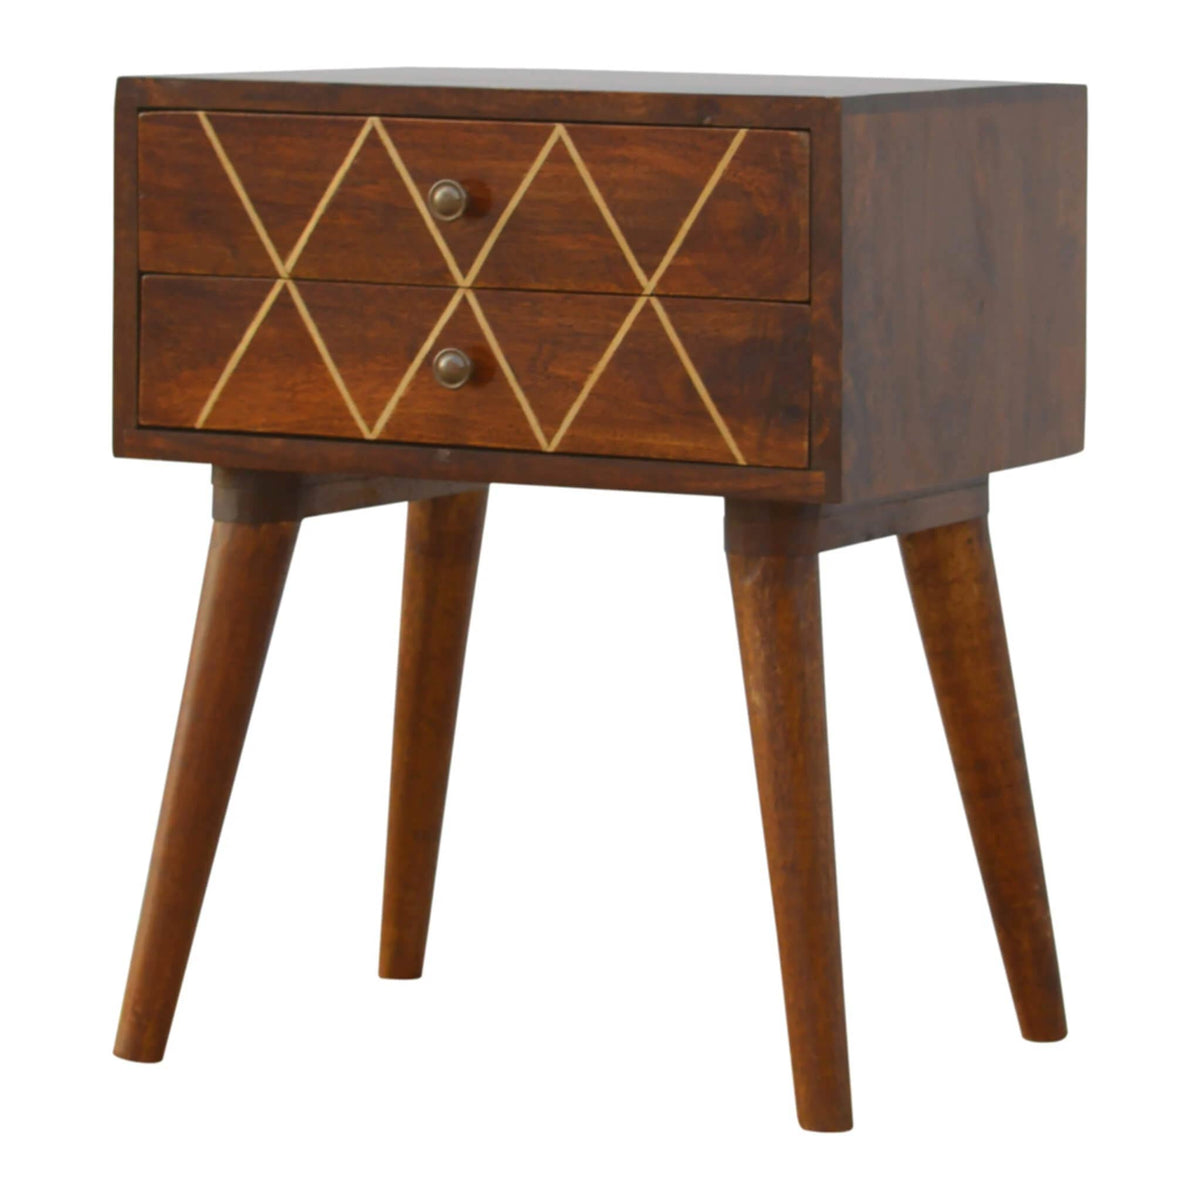 Artisan Drawer Bedside with Gold Wiring - side view